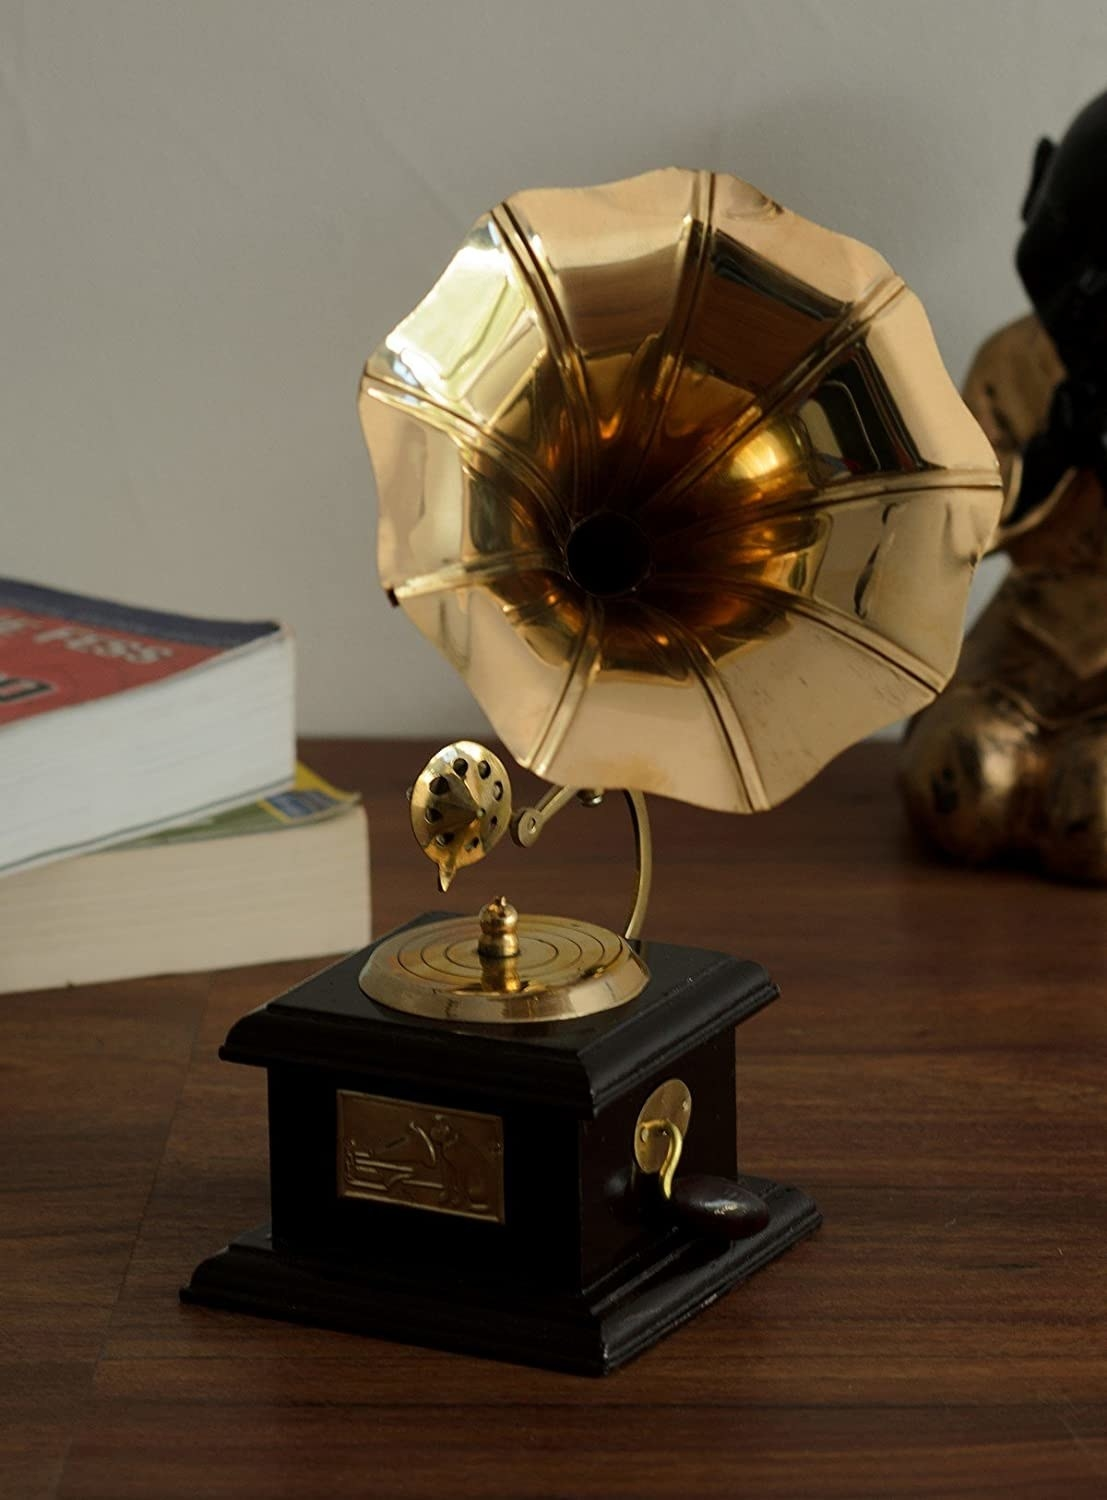 A brass gramophone on a table